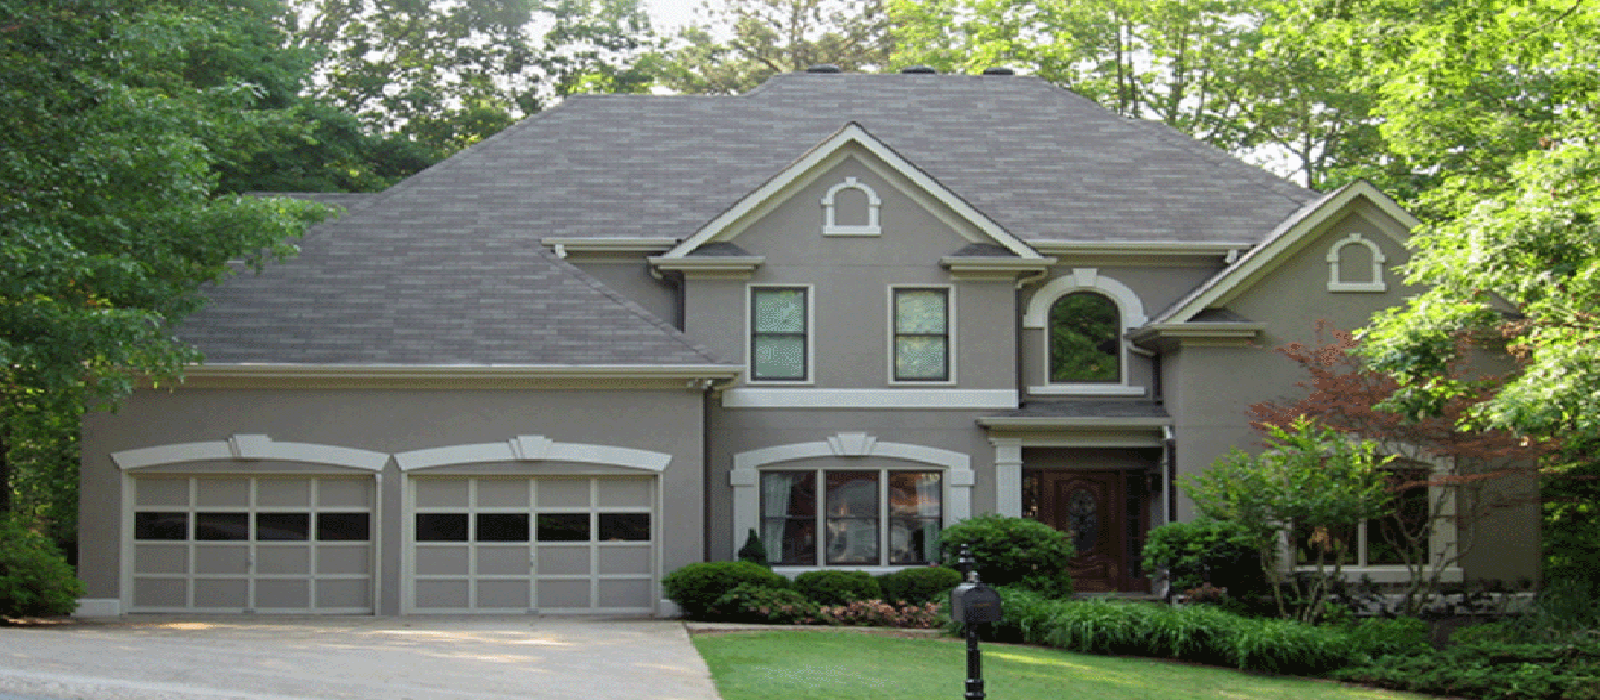 kansas city painters overland park painting contractors